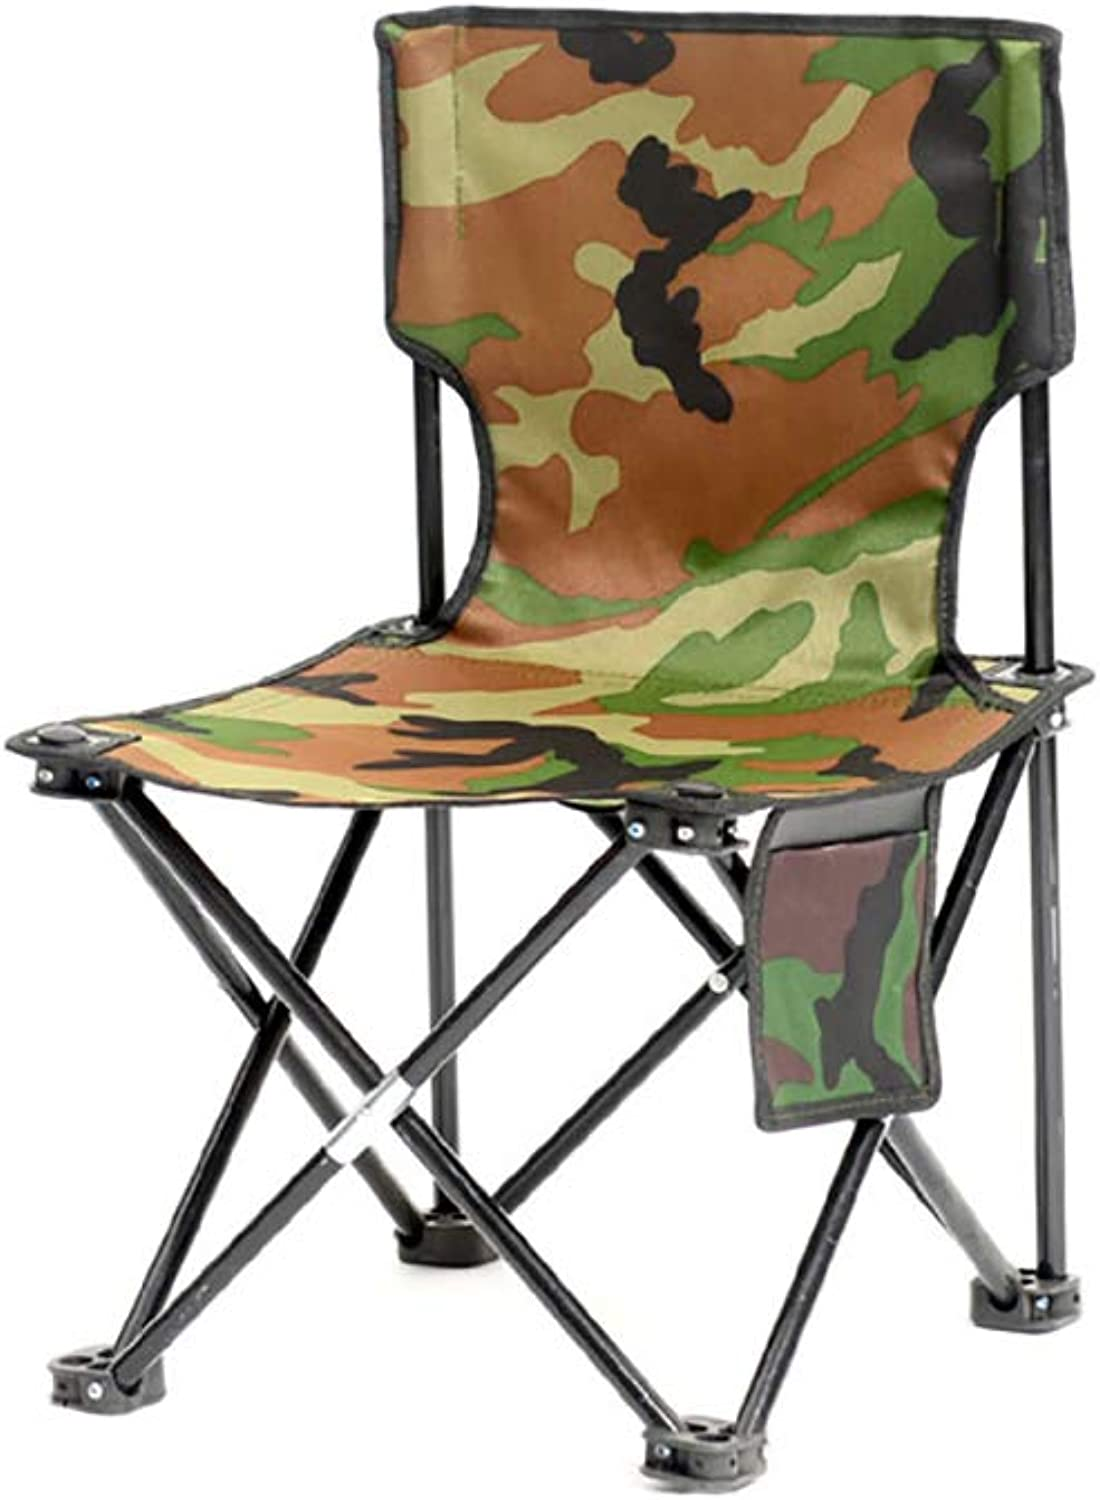 Heavy Duty Camping Folding Chair, Portable Camping Chair 600d Oxford Fabric with Storage Pocket Carry Bag Included,Supports 300 Lbs